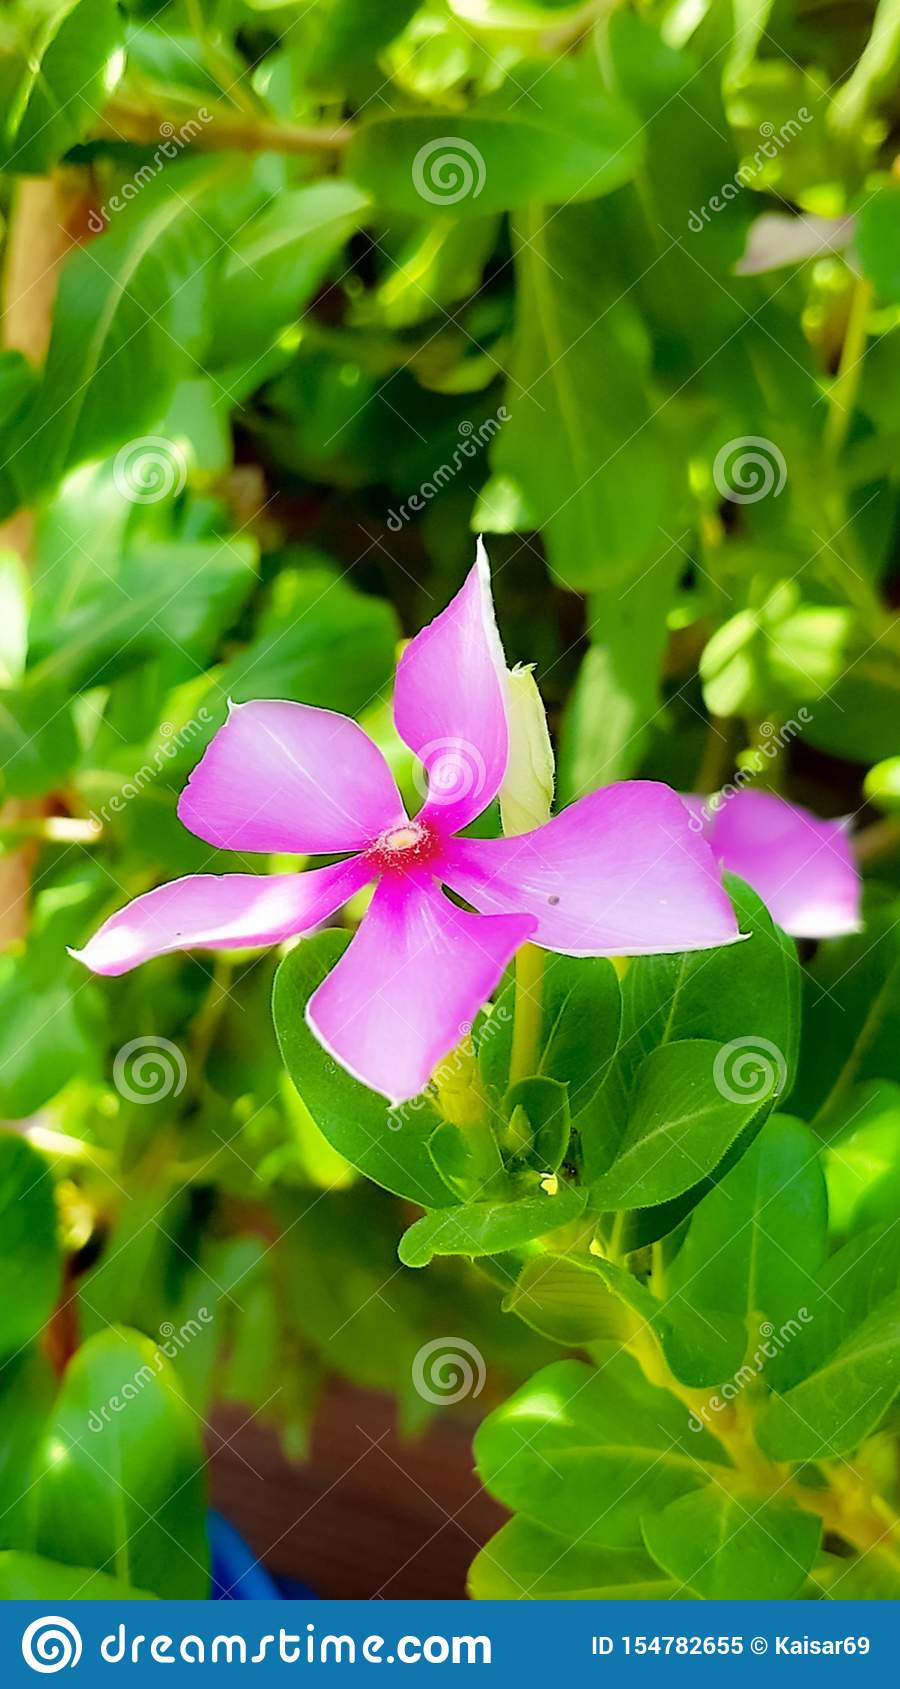 A Beautiful Flower Wallpaper For Mobile Stock Image Image